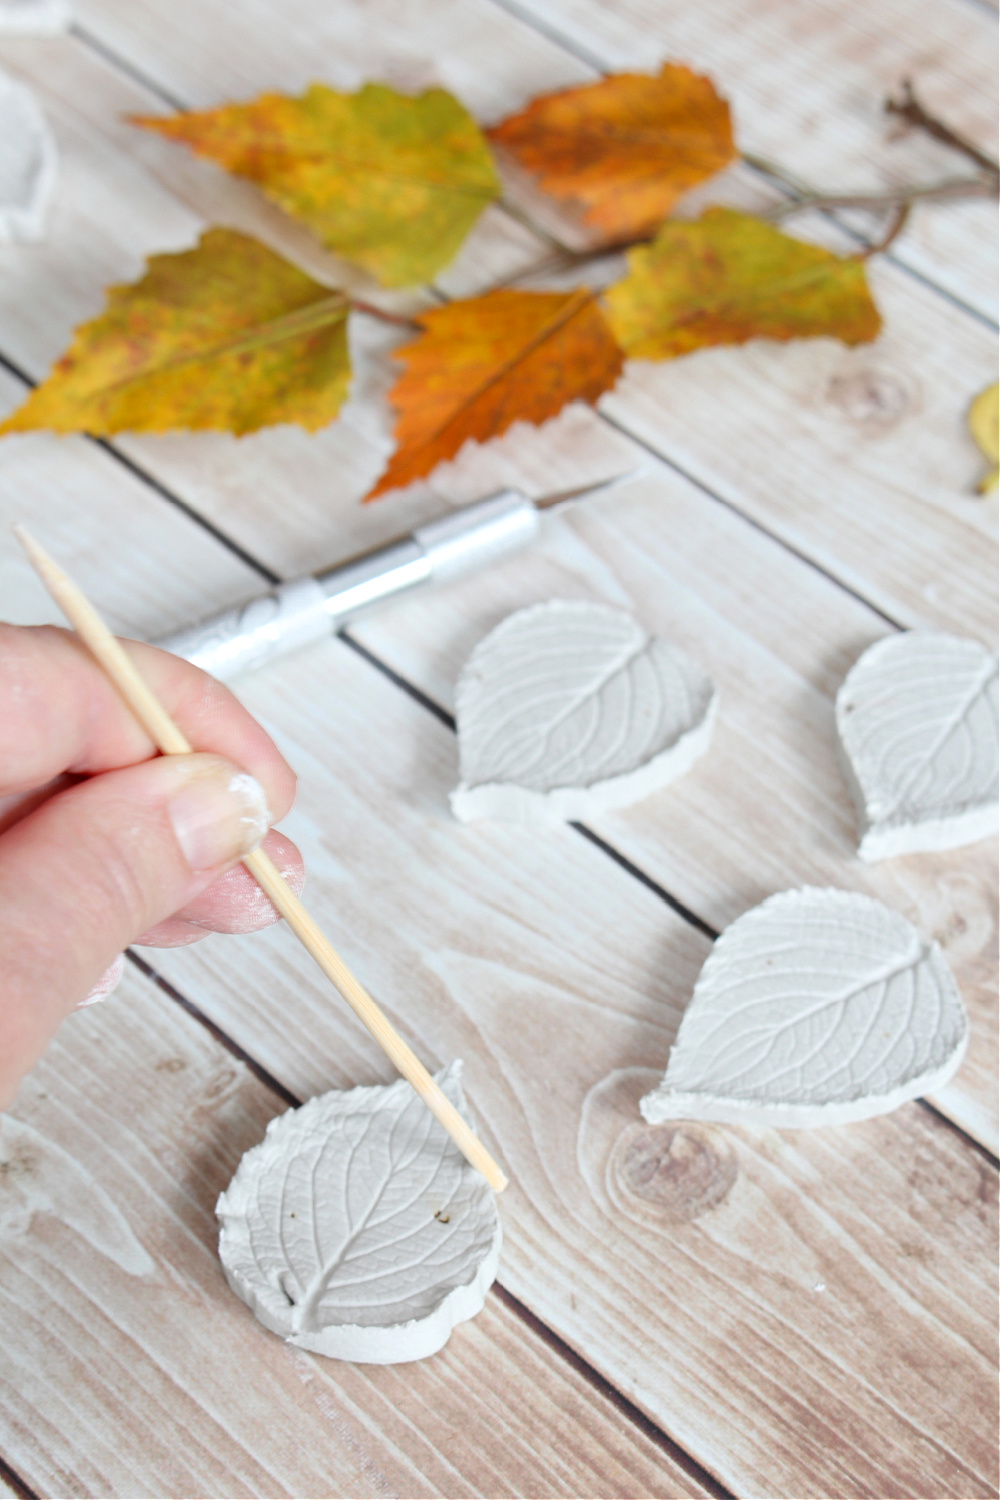 Molding air dry clay leaves with a wood skewer.